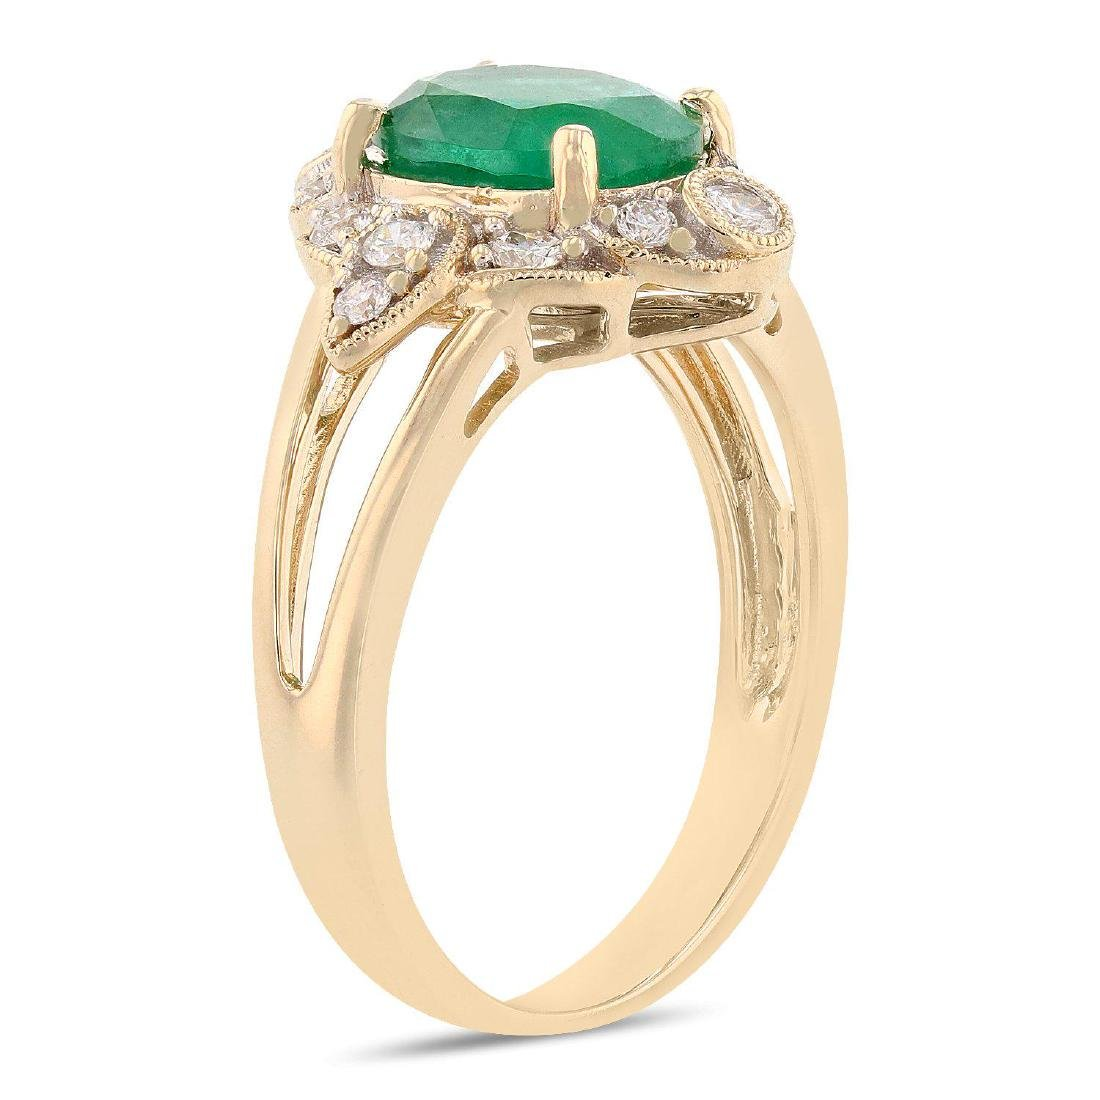 1.68ct Emerald and 0.33ctw Diamond 14K Yellow Gold Ring - 3